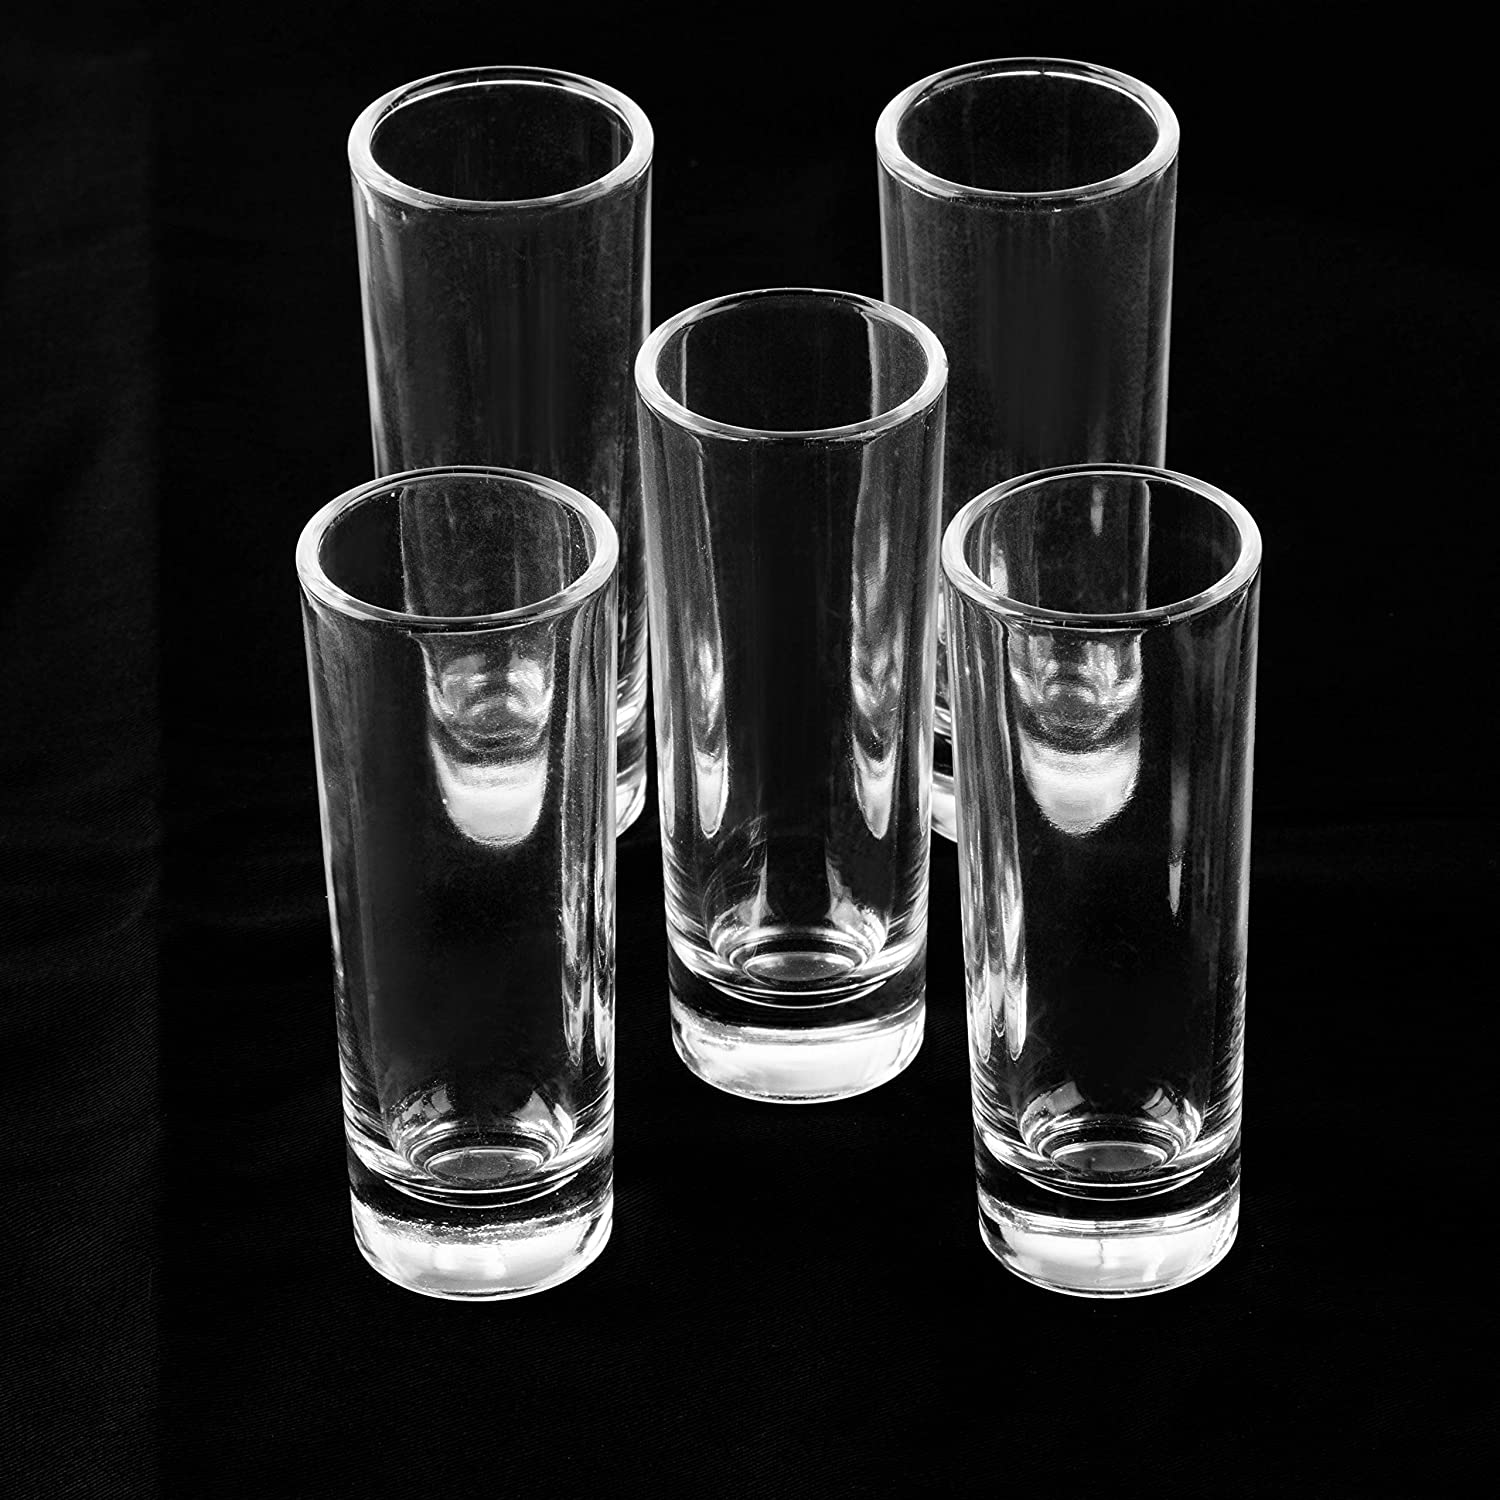 Parfaits Tequila 2 Ounces Vodka Whiskey Juvale Bulk 24-Pack Clear Shooters Tall Shot Glasses for Parties Dessert